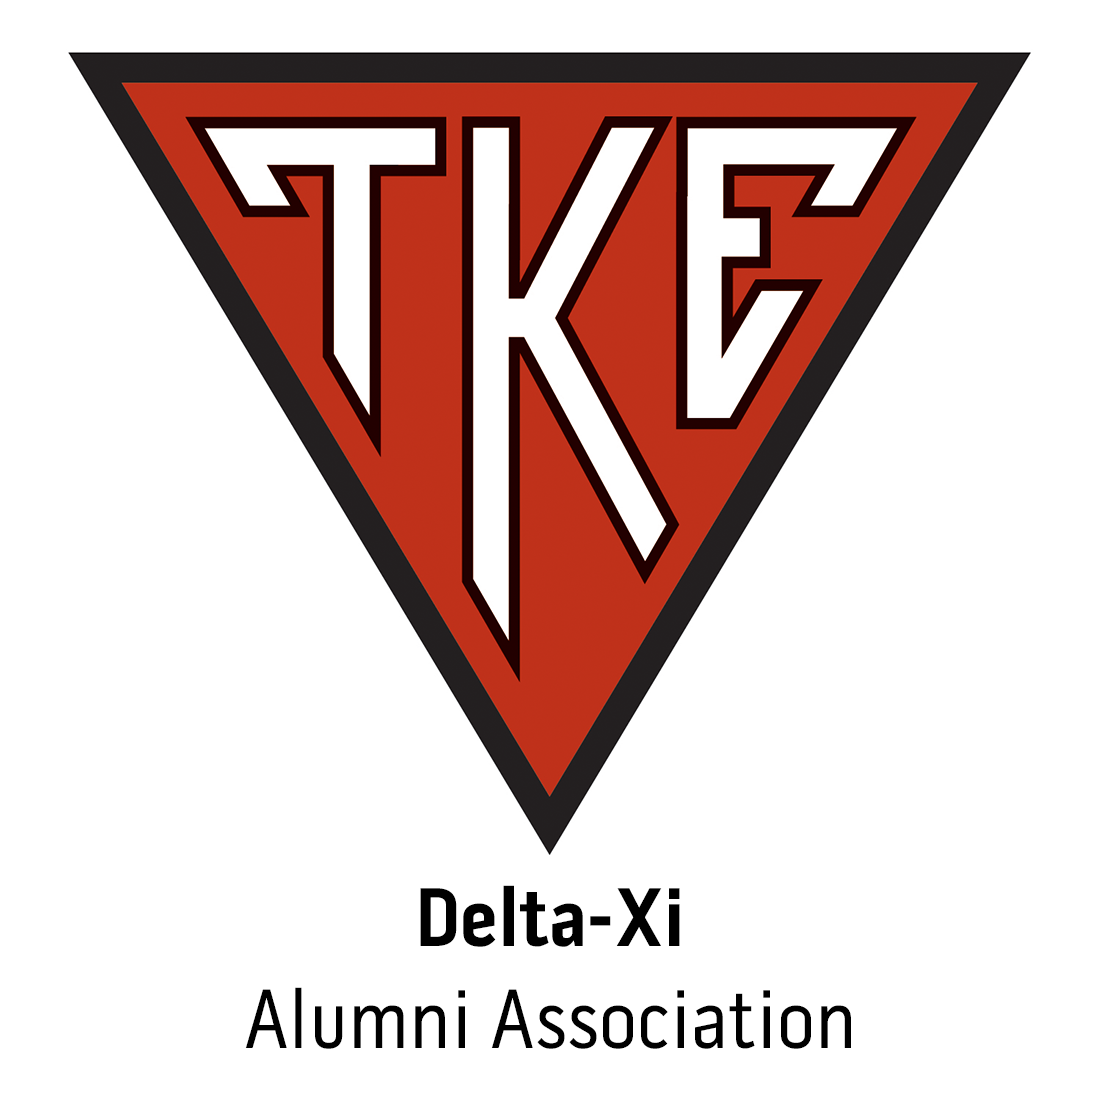 Delta-Xi Alumni Association Alumni at Miami University